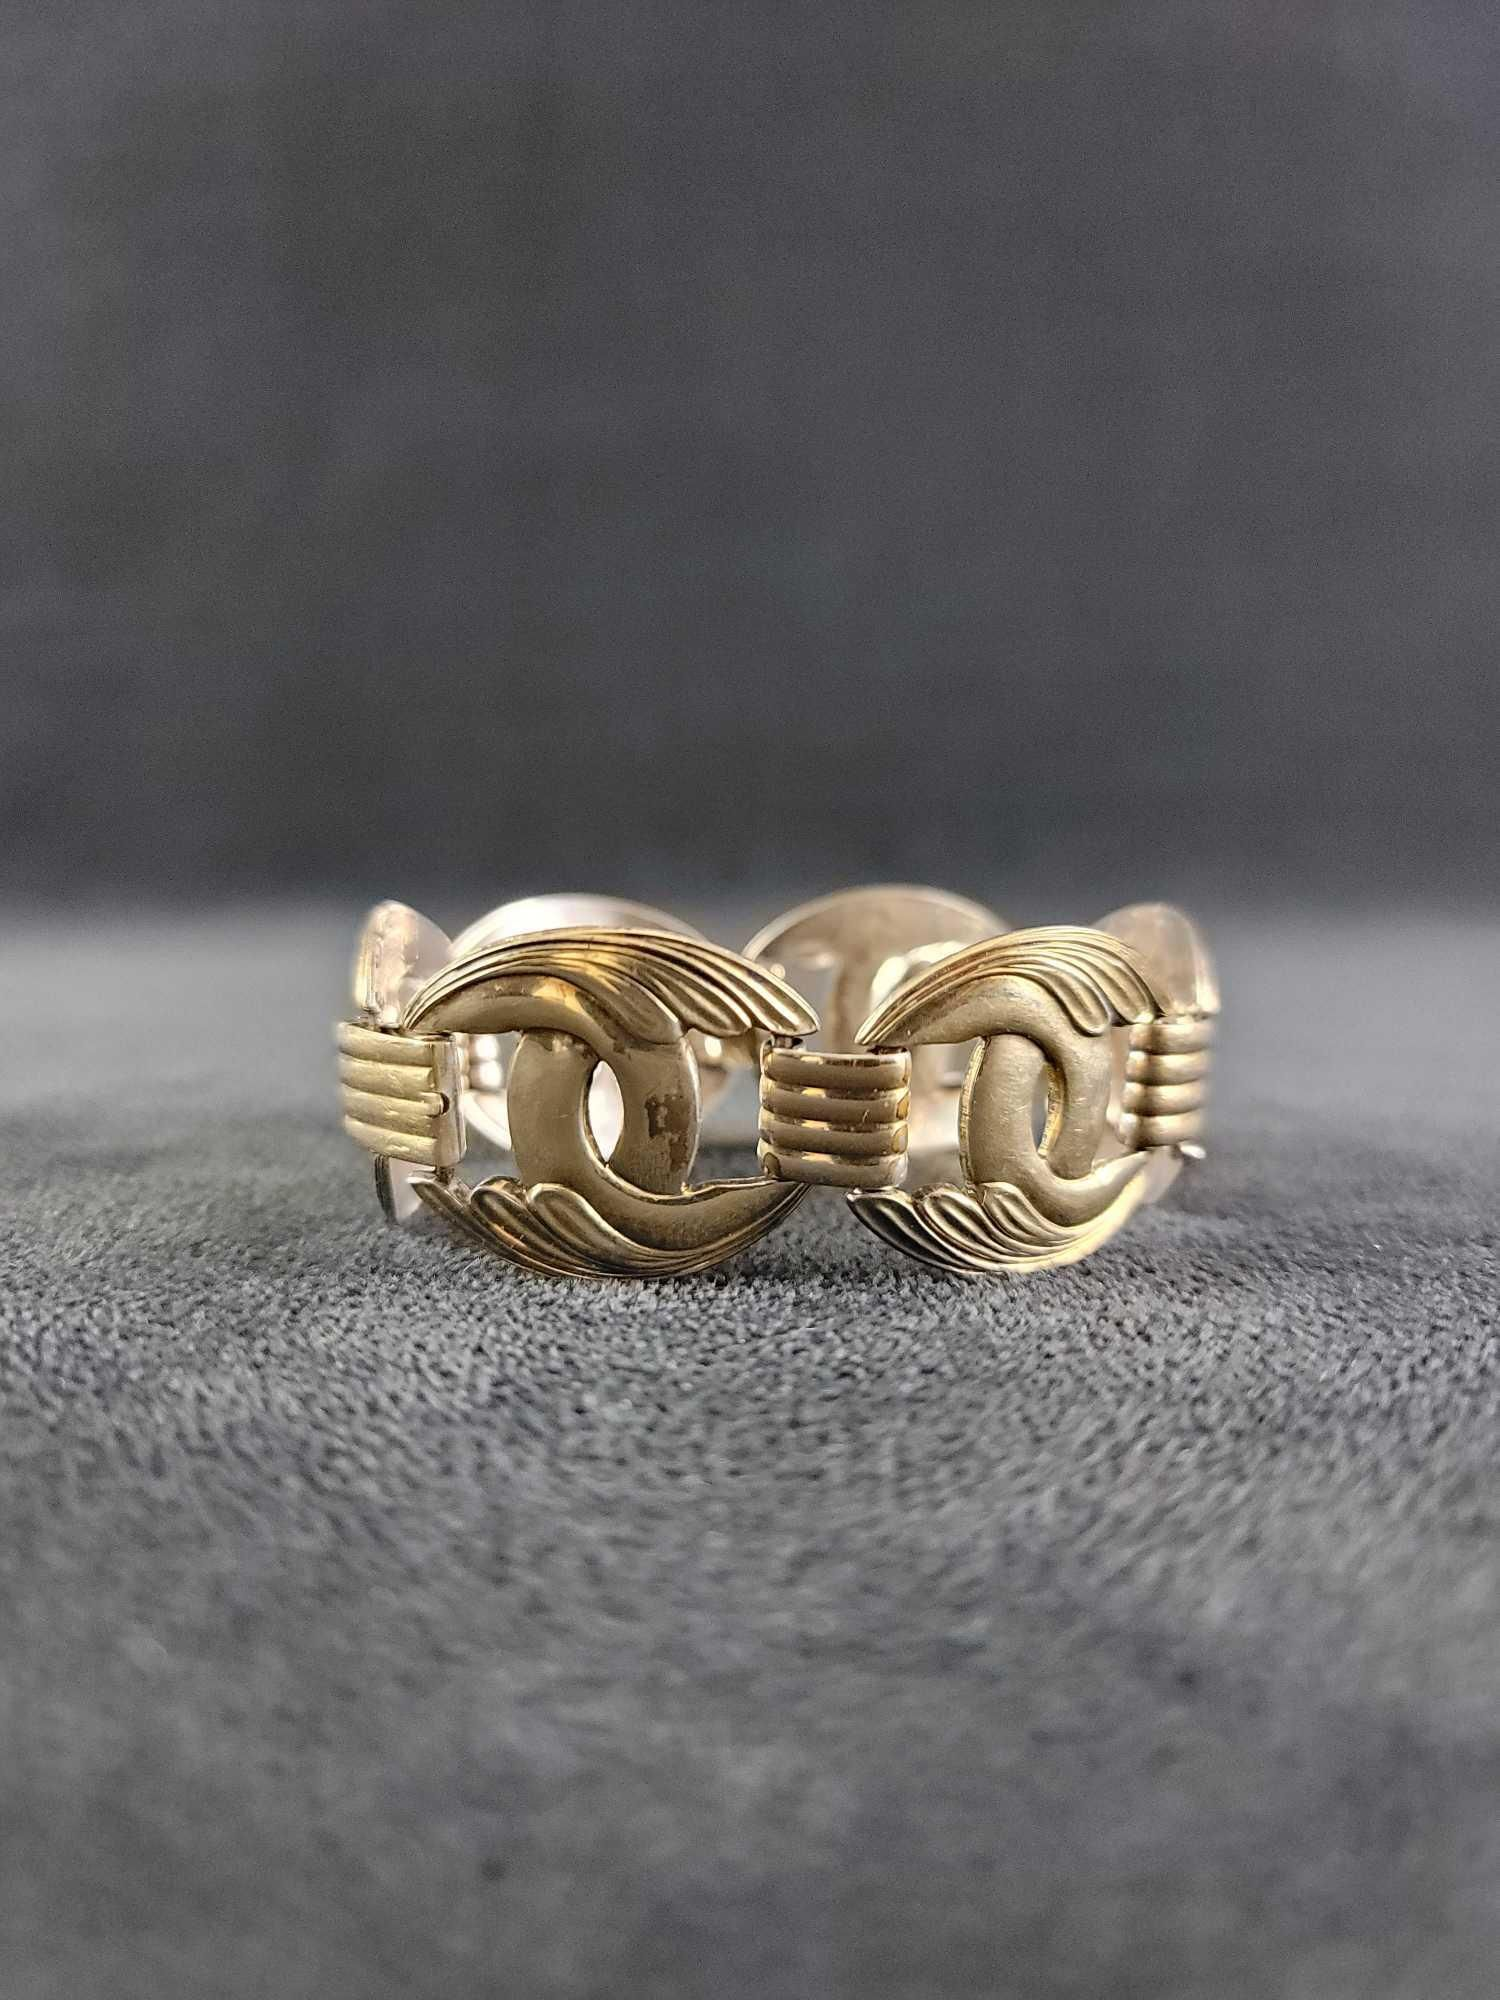 Symmetalic Sterling and 14K Gold